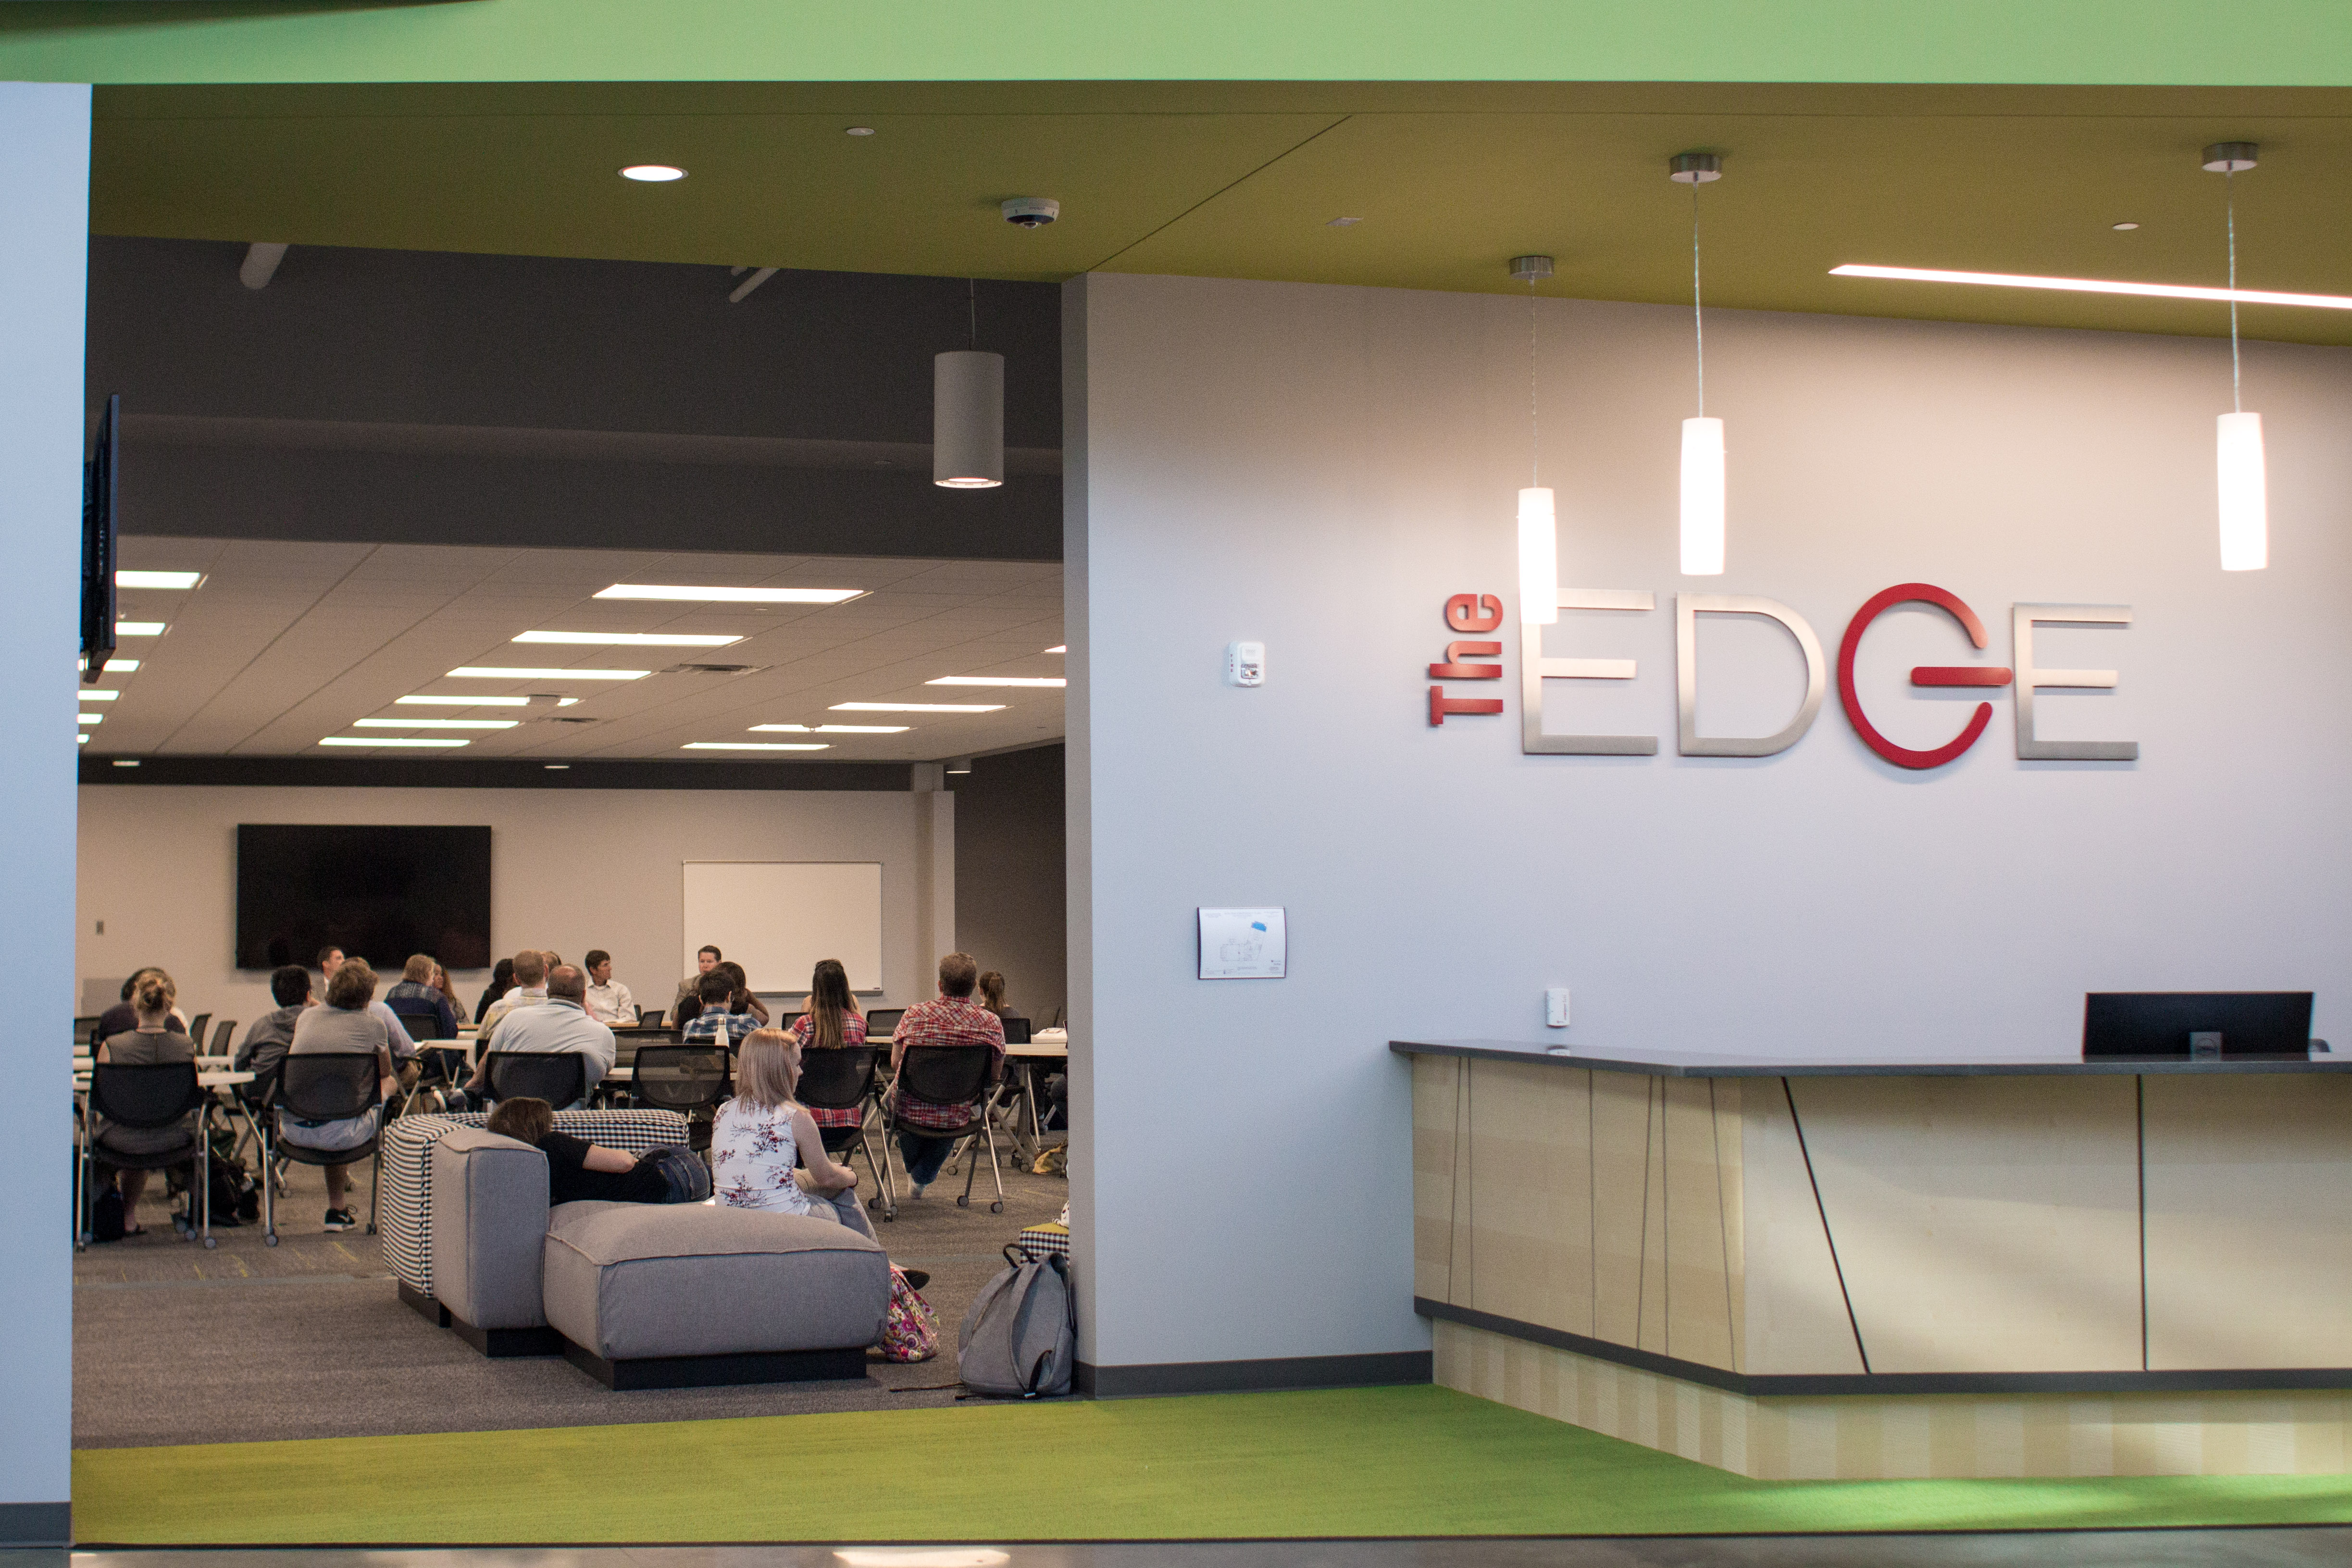 The EDGE, an incubator and accelerator designed to help build and grow businesses and jobs, was the third and final stop on Day 1 of the tour.